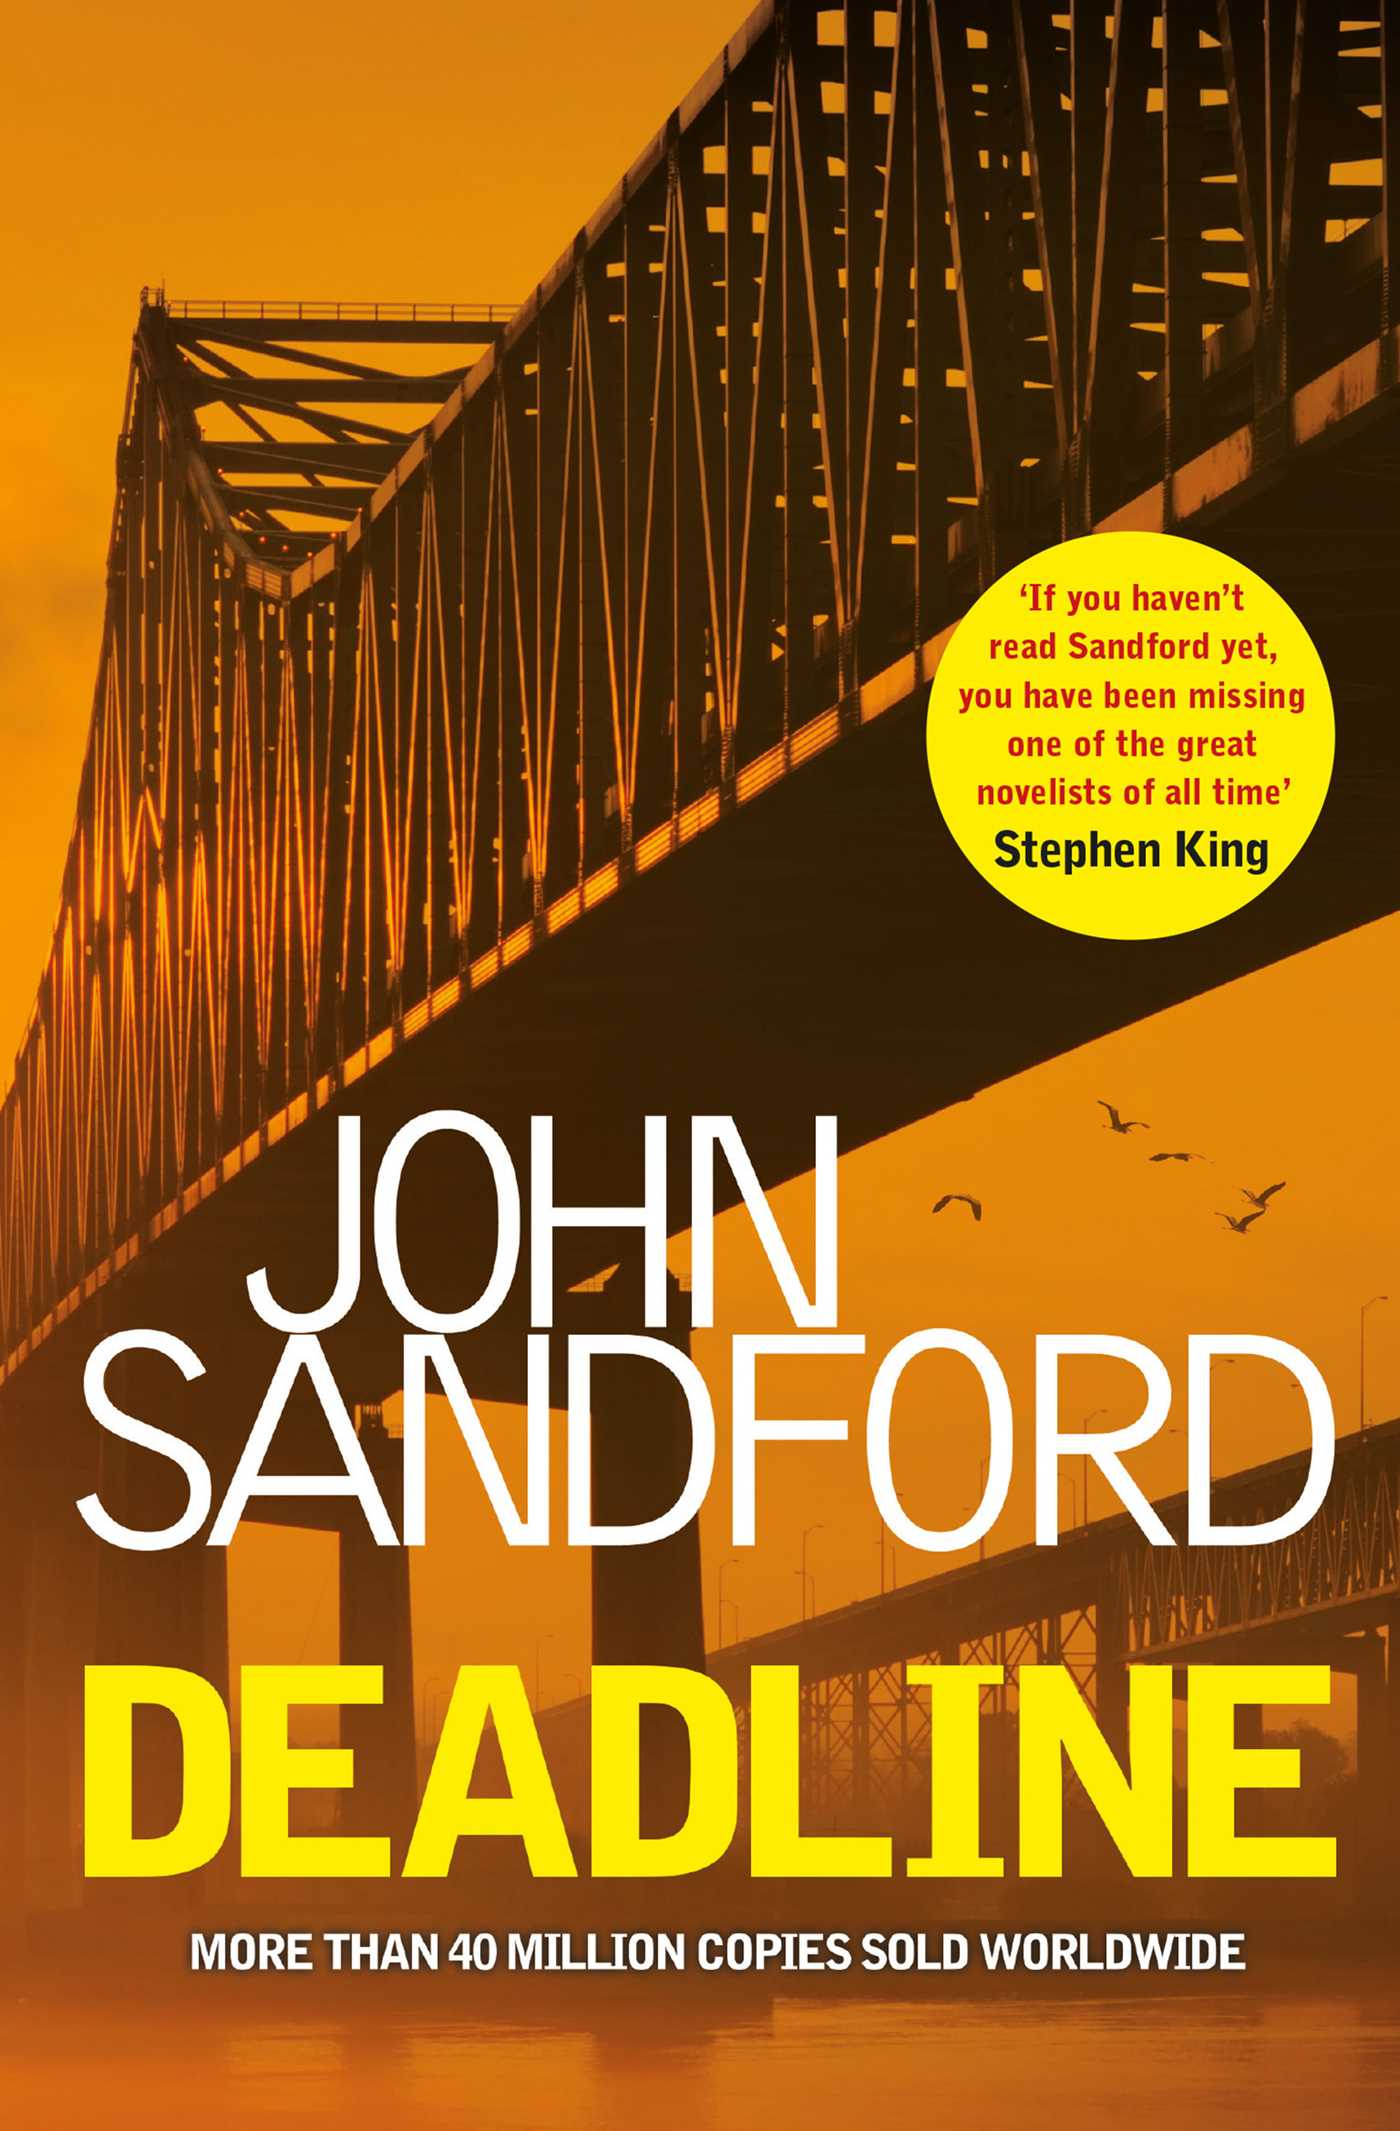 Deadline Book by John Sandford ficial Publisher Page